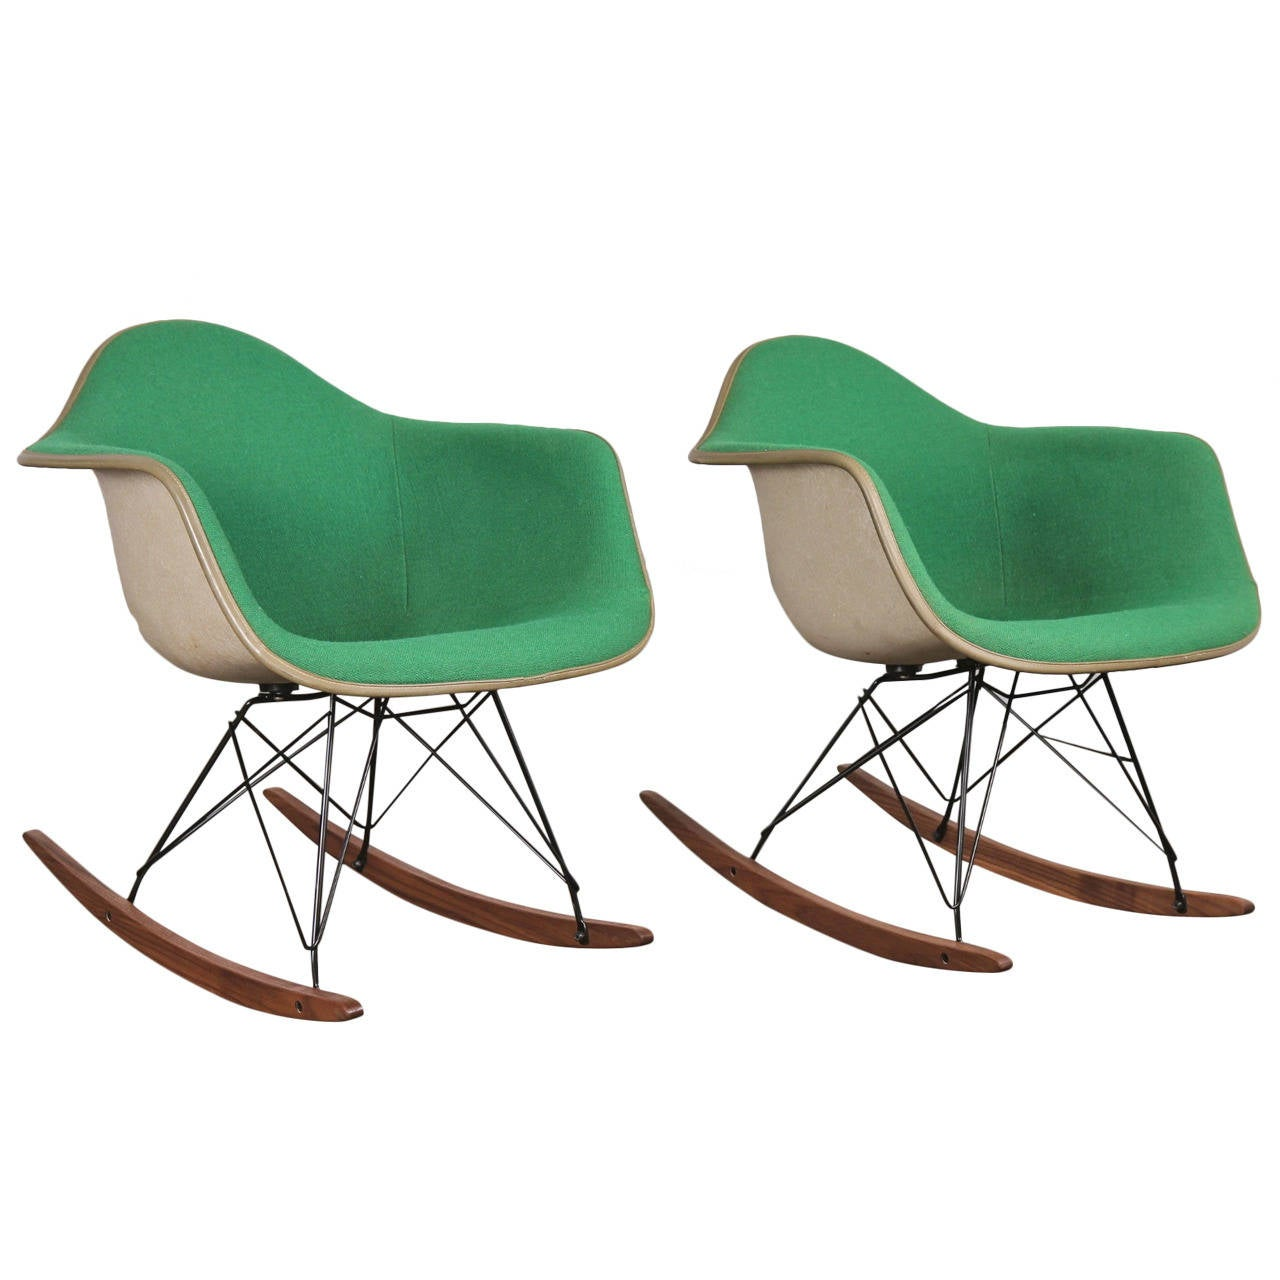 Vintage Green Eames Upholstered Rocking Chair   One Left For Sale